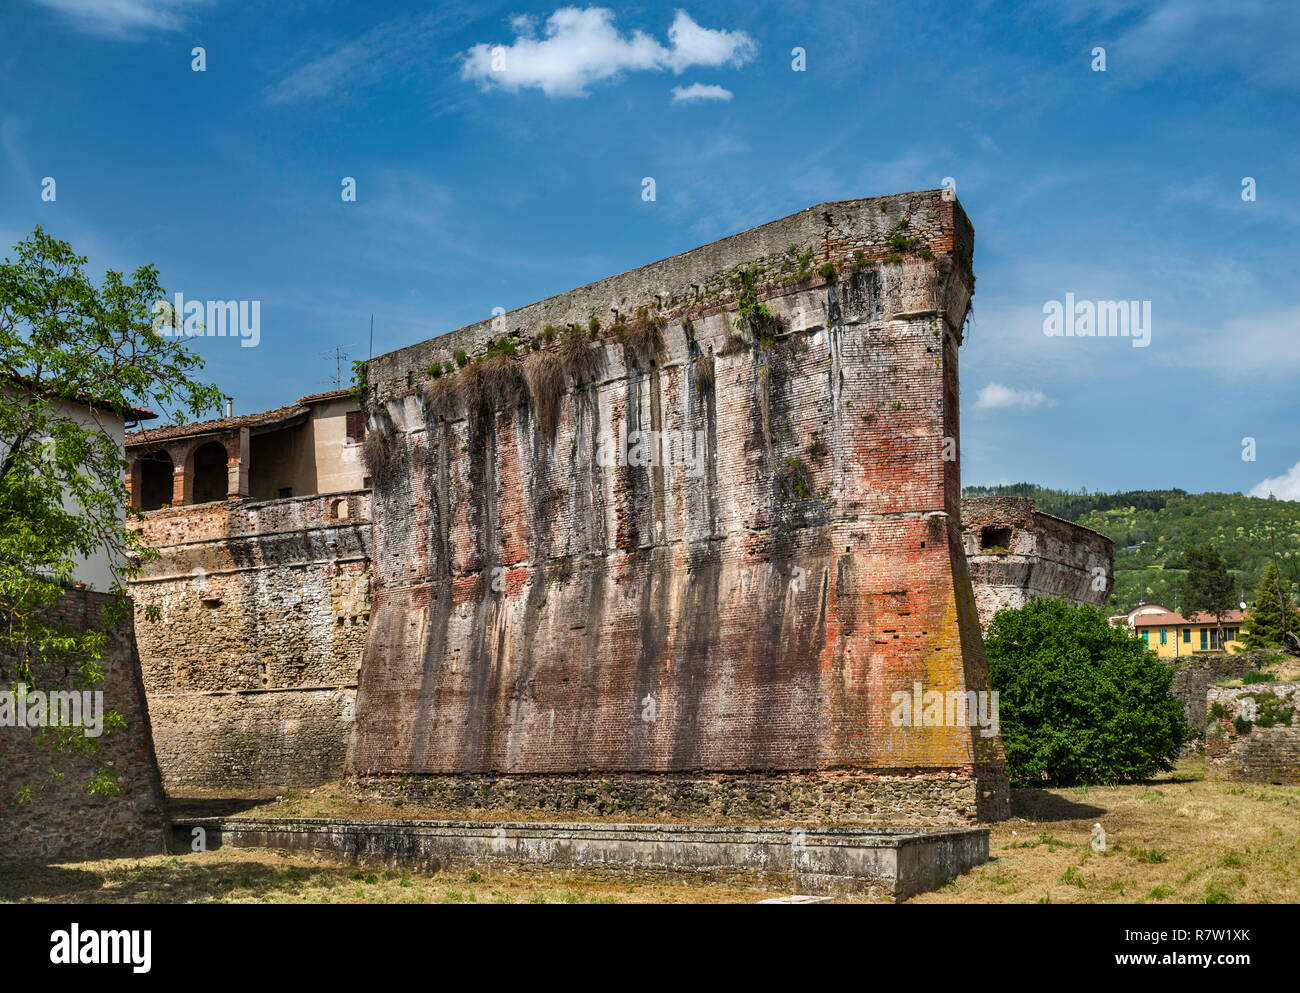 Bastion at fortress, built by Medici family, in Sansepolcro, Tuscany, Italy - Stock Image